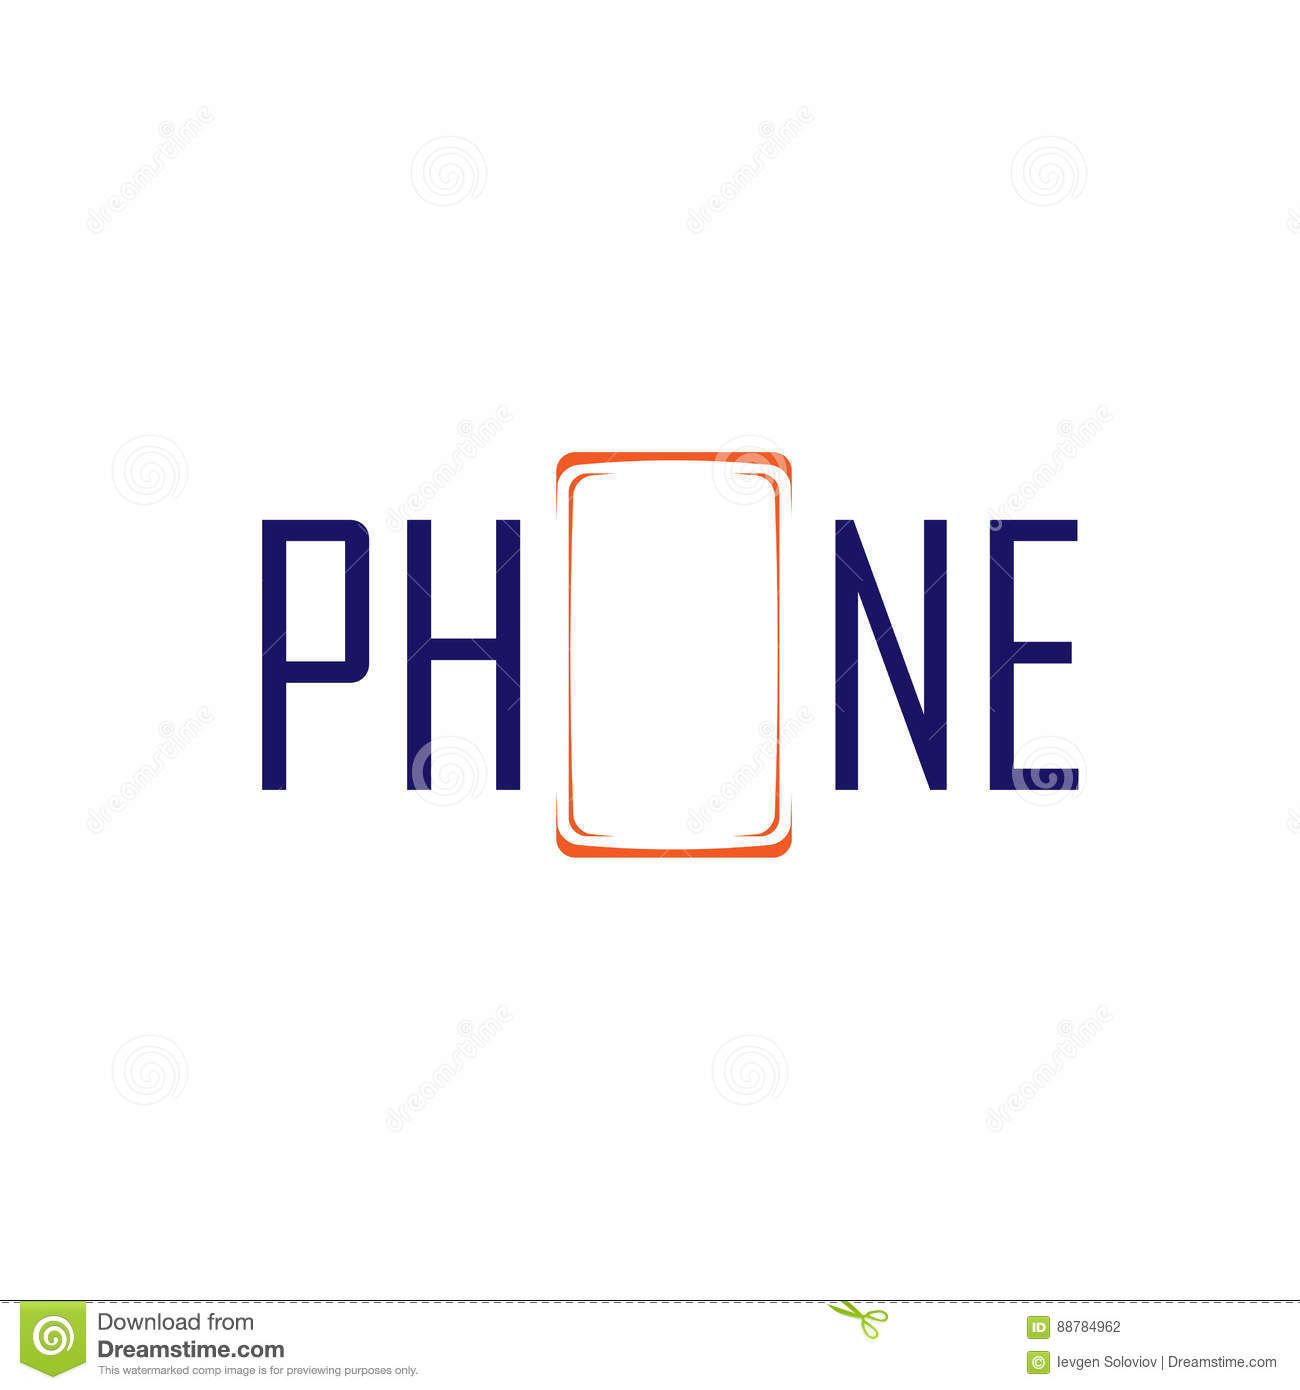 Phone Symbol And Logo Stock Vector Illustration Of Graphic 88784962